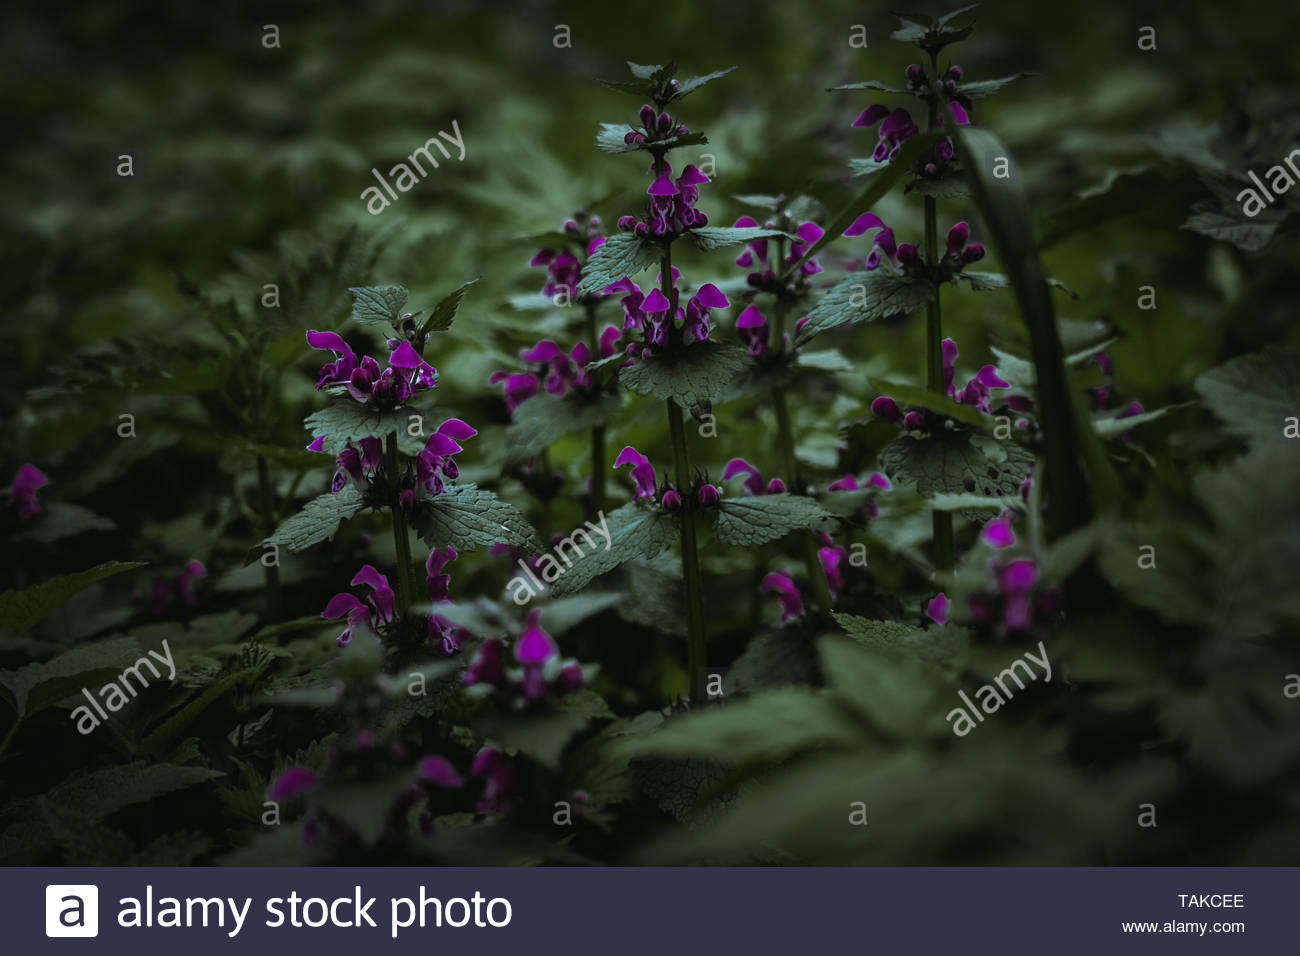 green plants in the forest - Stock Image